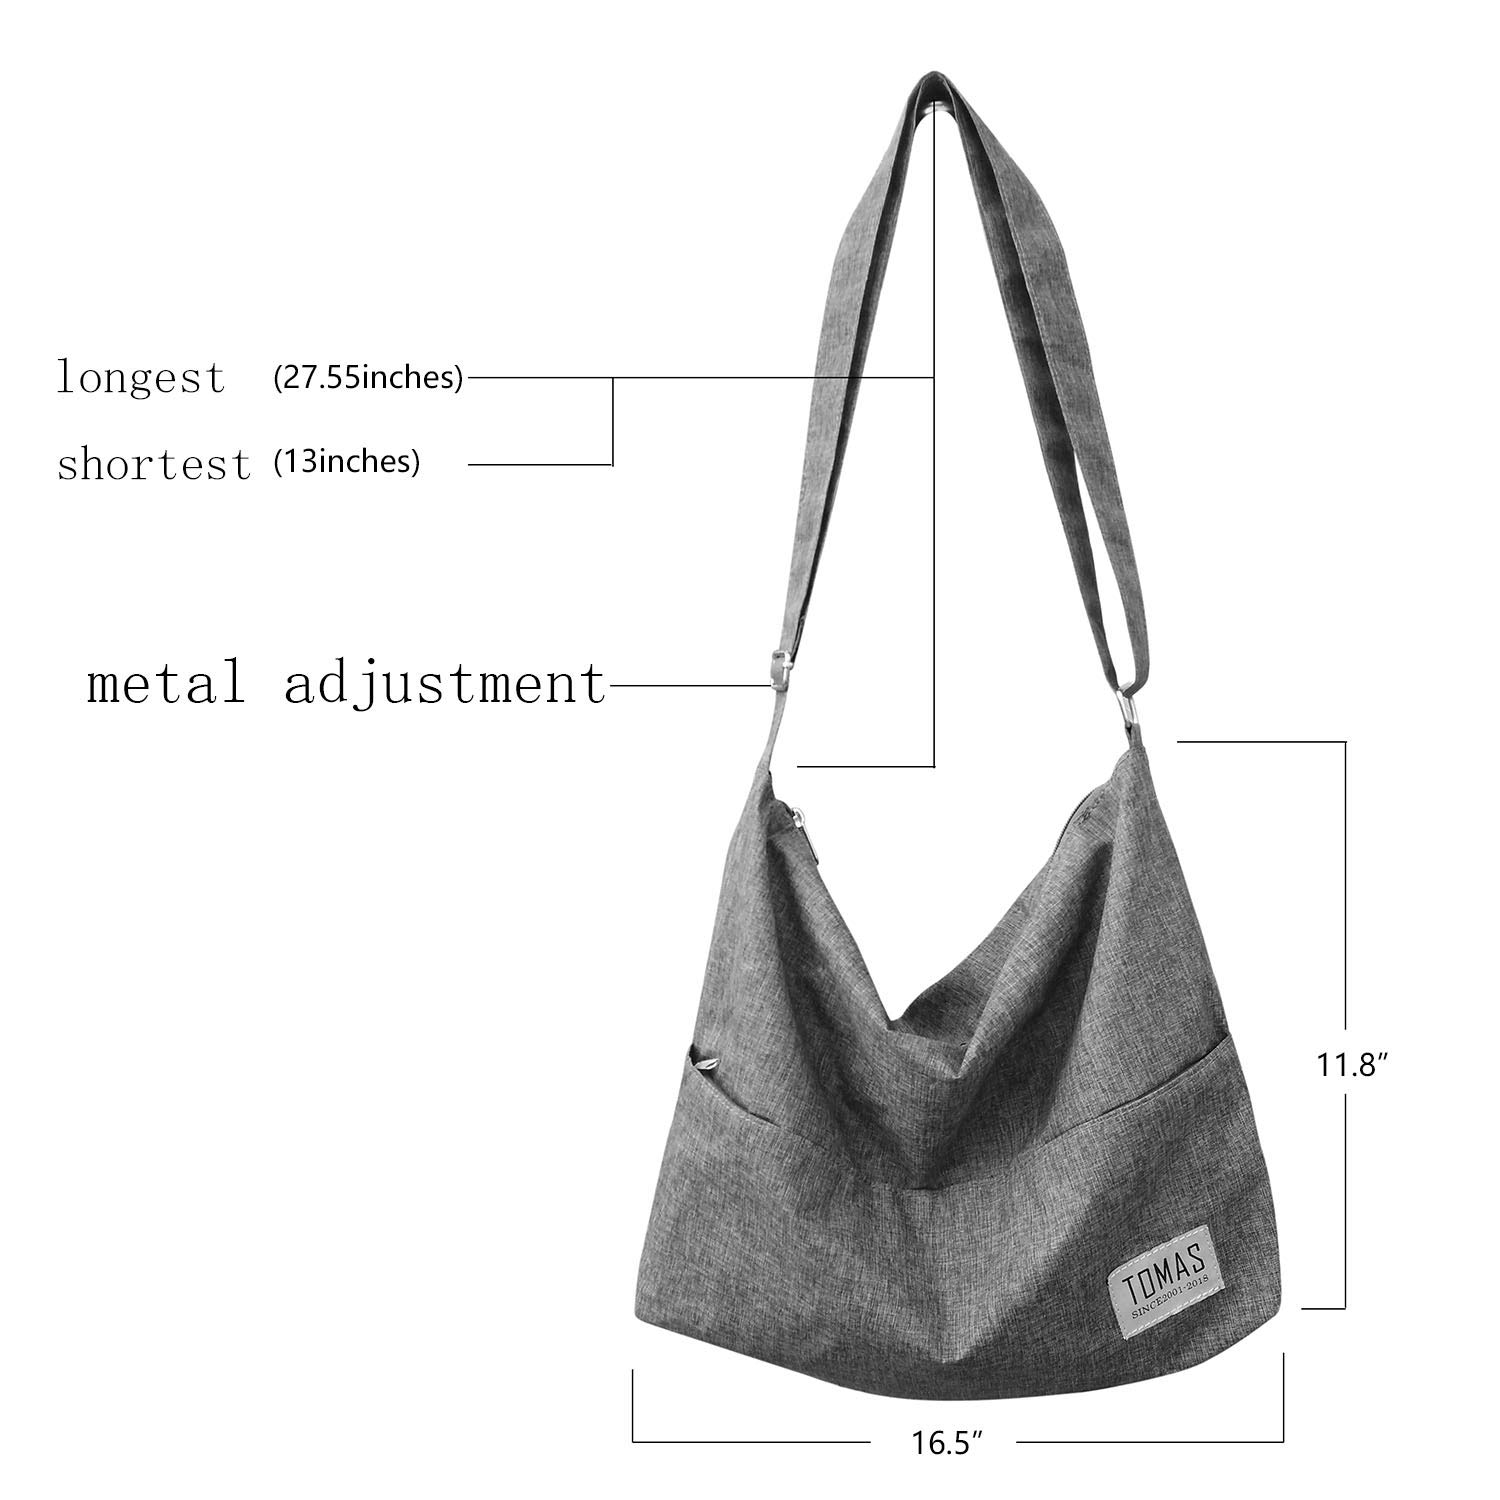 TOMAS Women Casual, Simple, Fashion, Resistant To Dirty, Lightweight,Durable Canvas Hobo Bag, Single Shoulder Bag Totes Bag Crossbody Bag by TOMAS (Image #5)